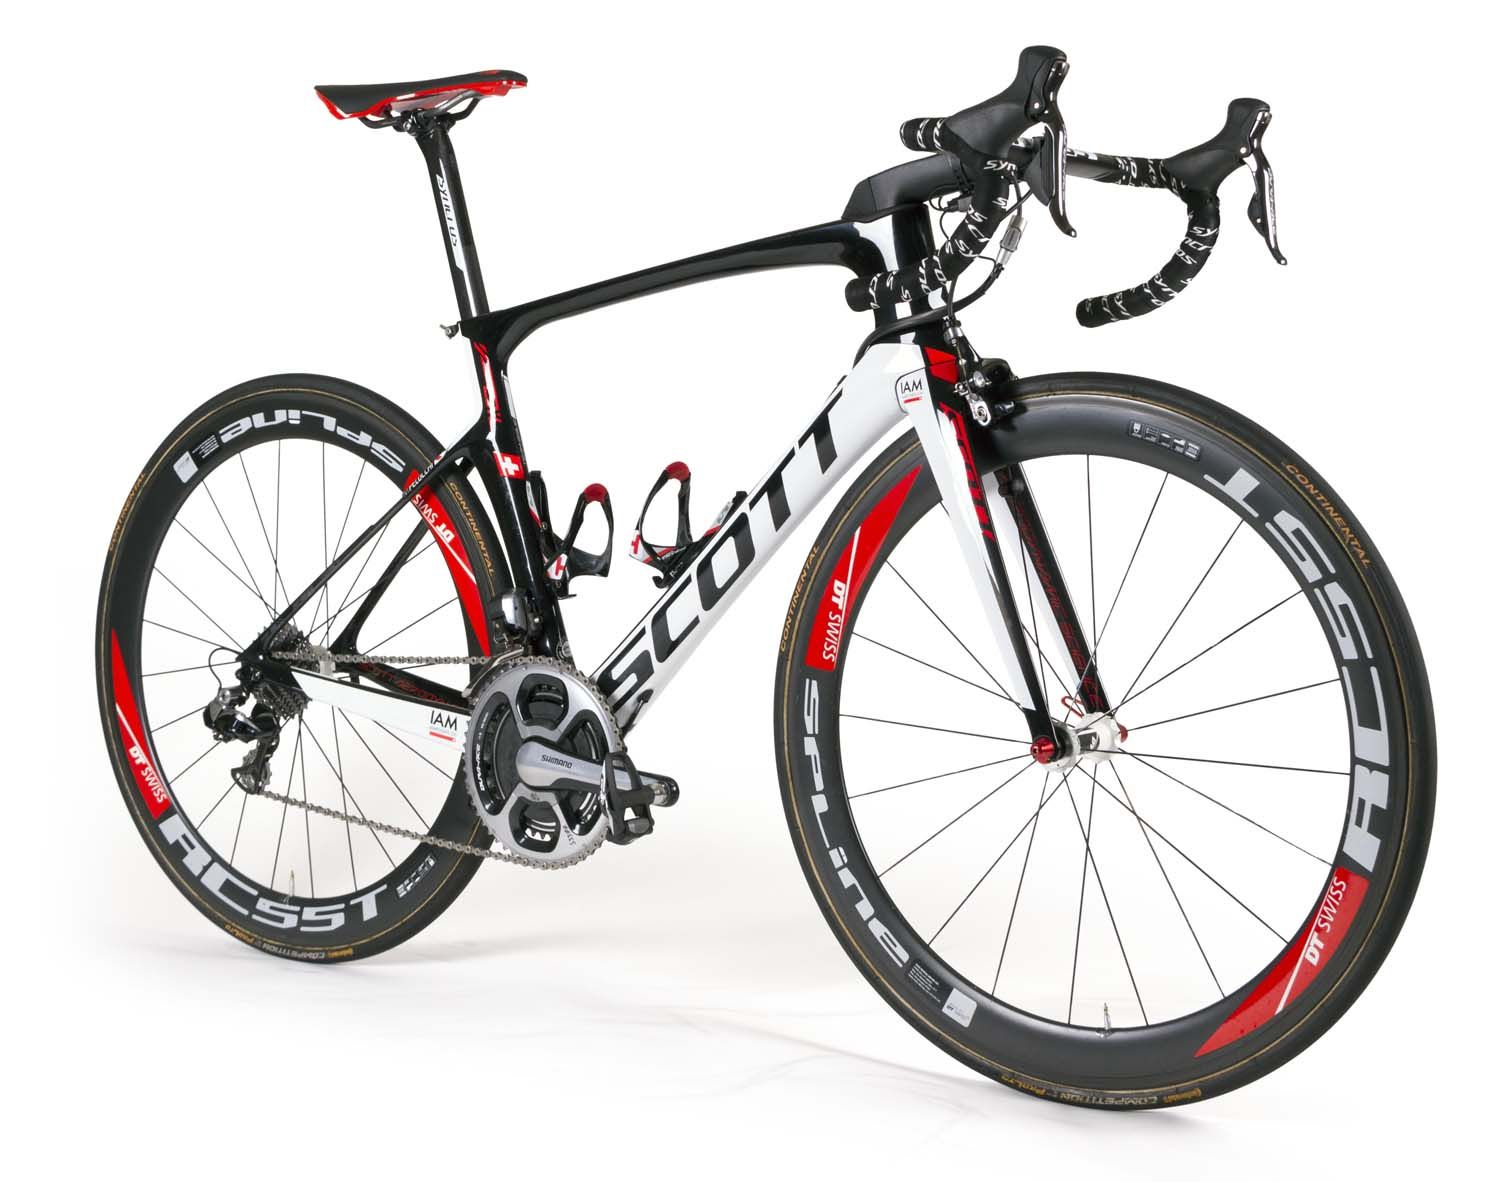 118 Best Road Bike Images On Pinterest Cycling Bicycle Design